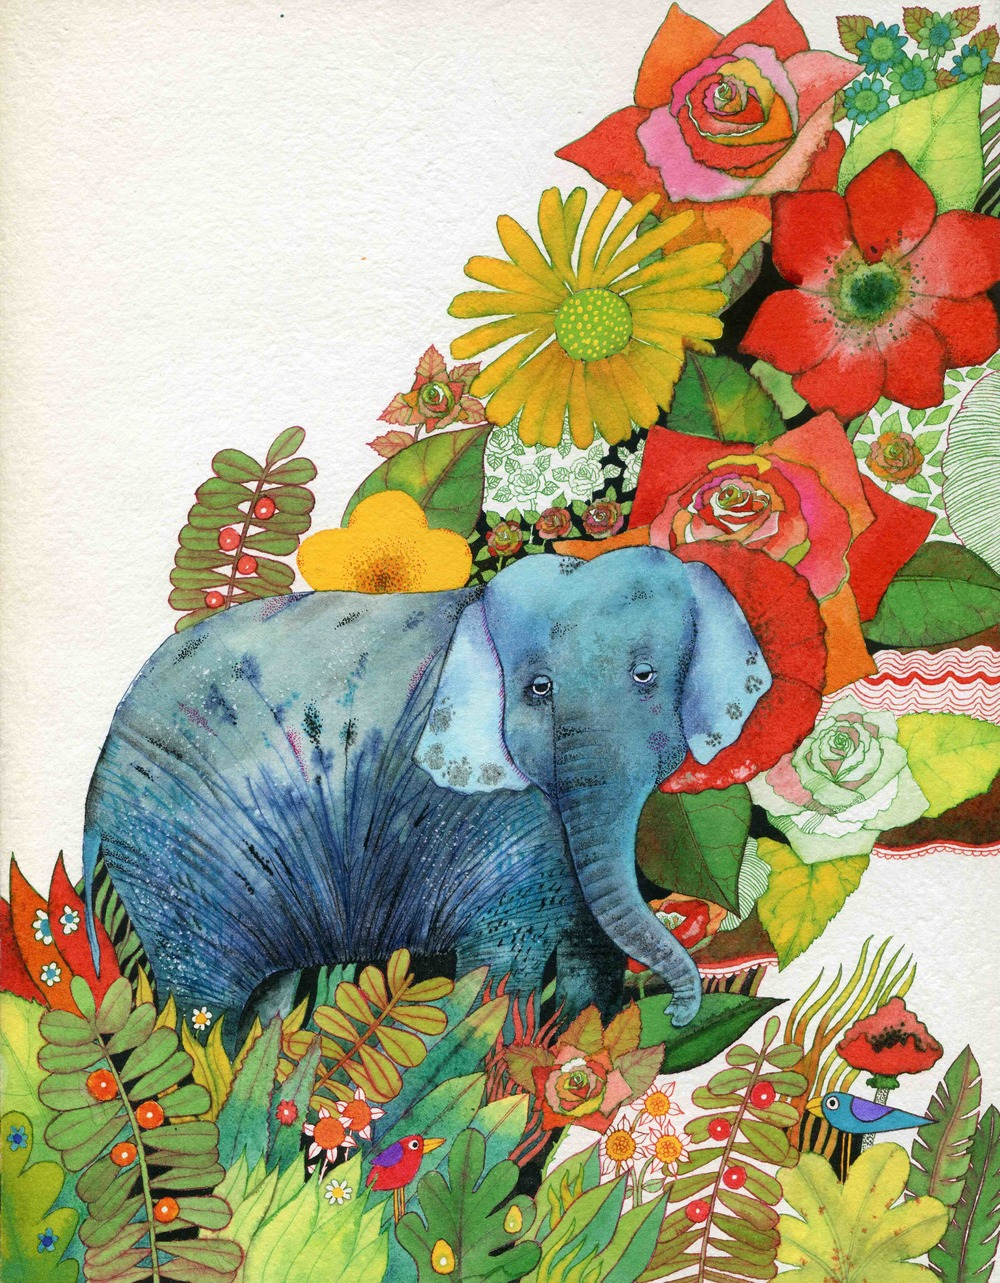 An illustration from The Elephant Book, 1974 (unpublished)